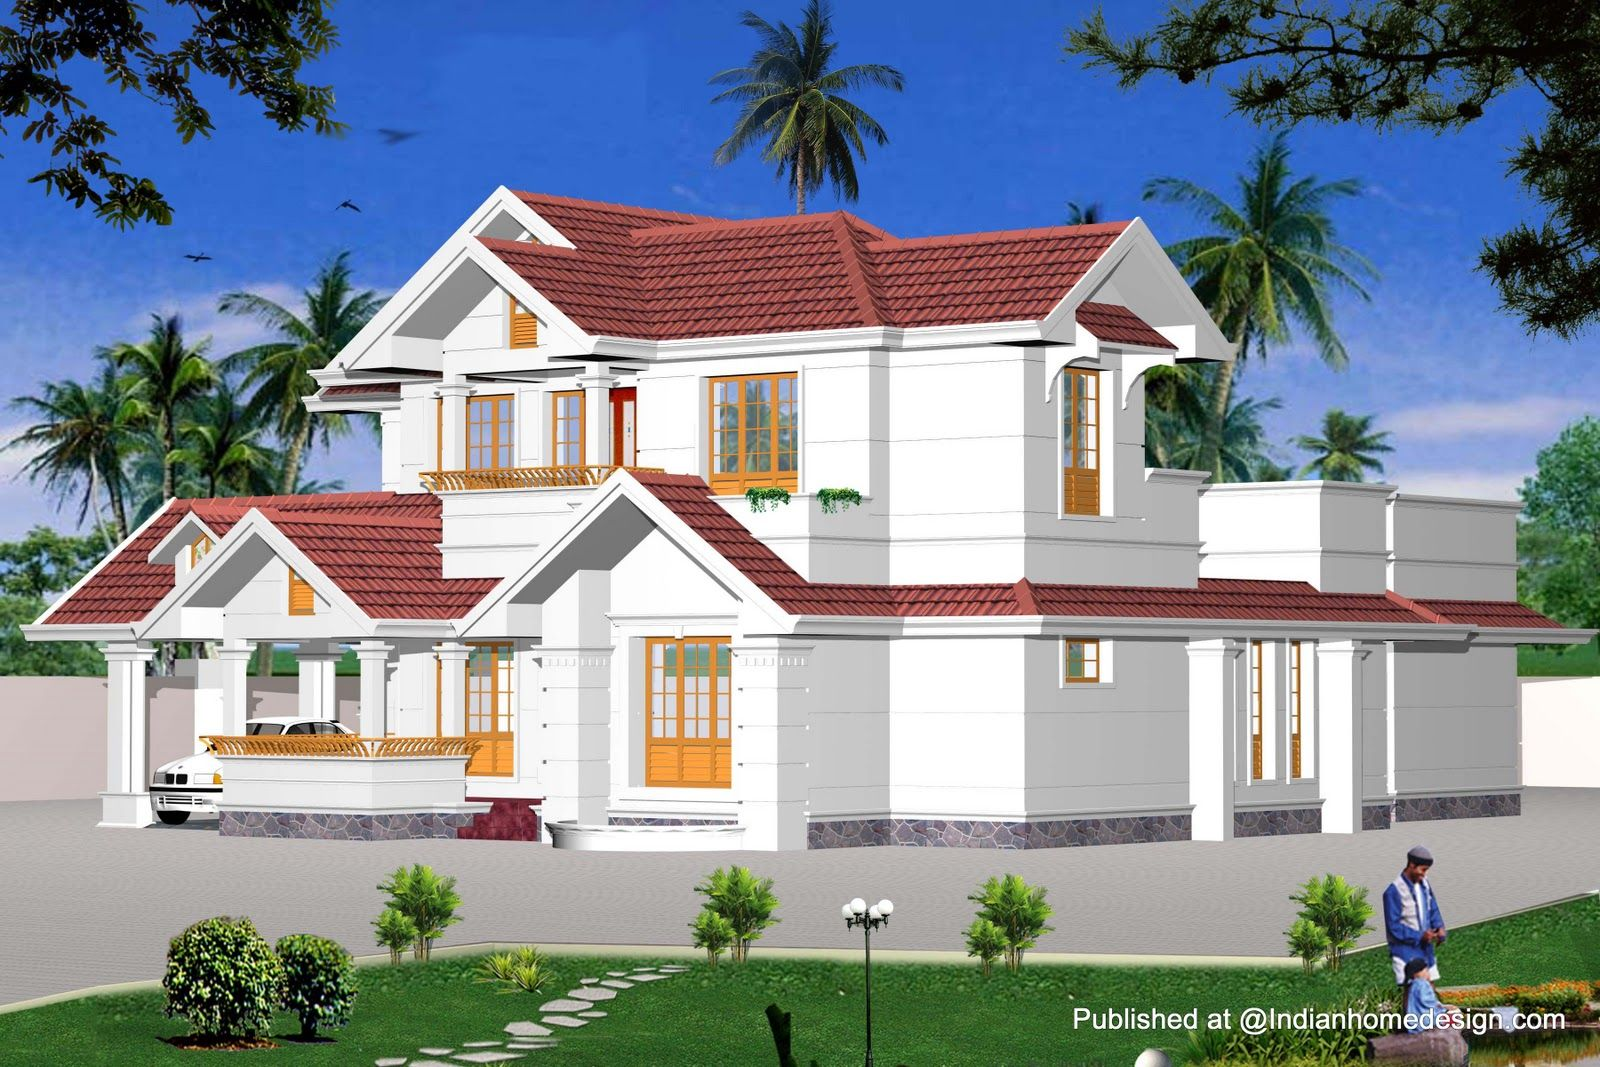 Tremendous 17 Best Images About Beautiful Indian Home Designs On Pinterest Largest Home Design Picture Inspirations Pitcheantrous